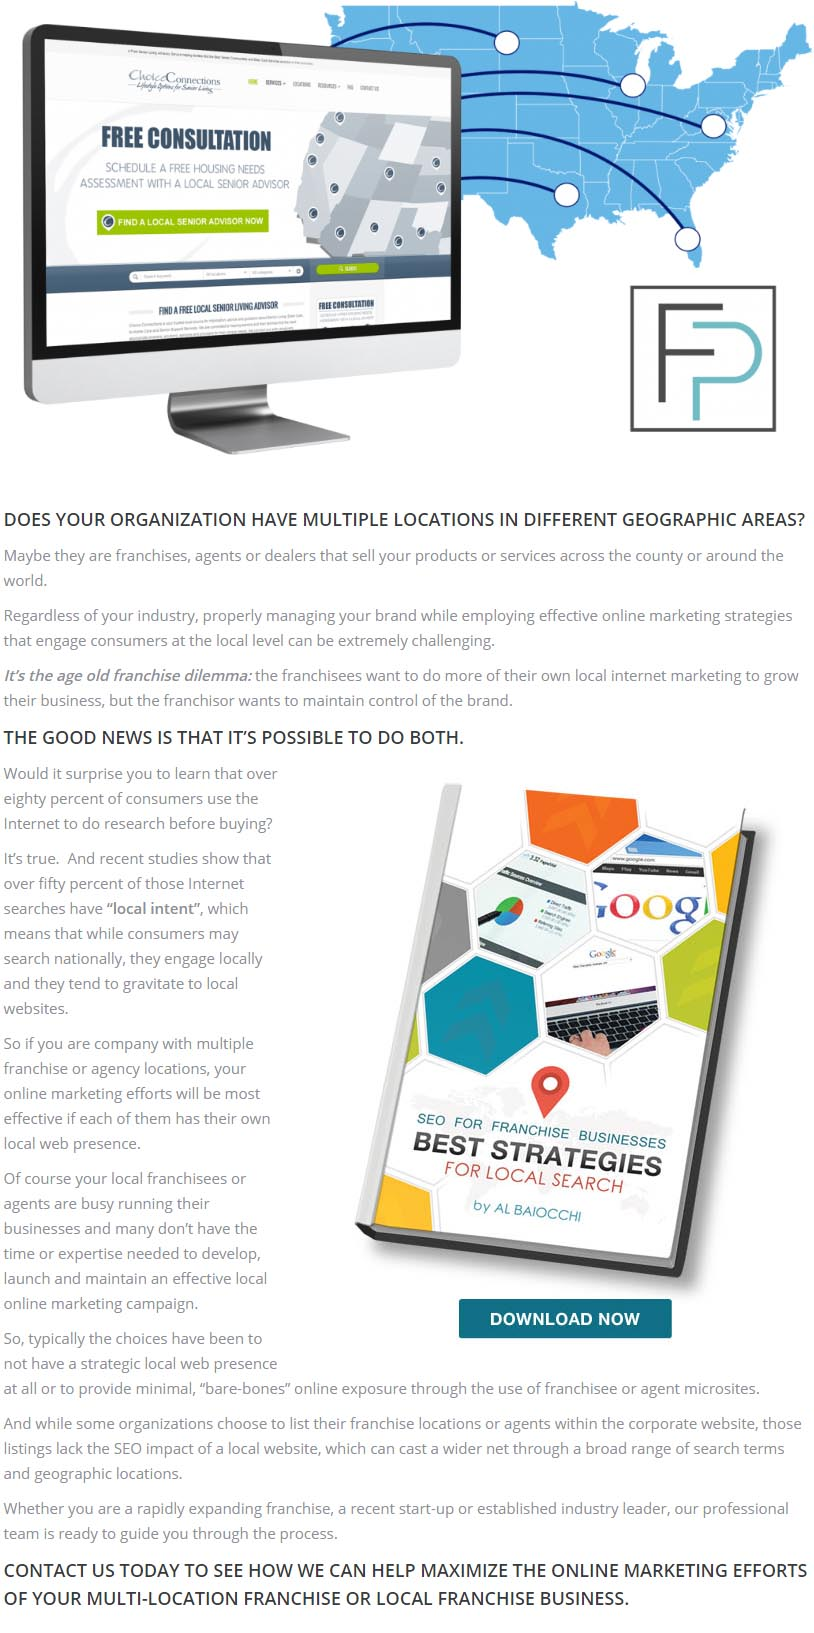 FrontPage Interactive, LLC, website marketing ideas, website marketing research, website marketing services, website marketing strategies, website marketing strategy